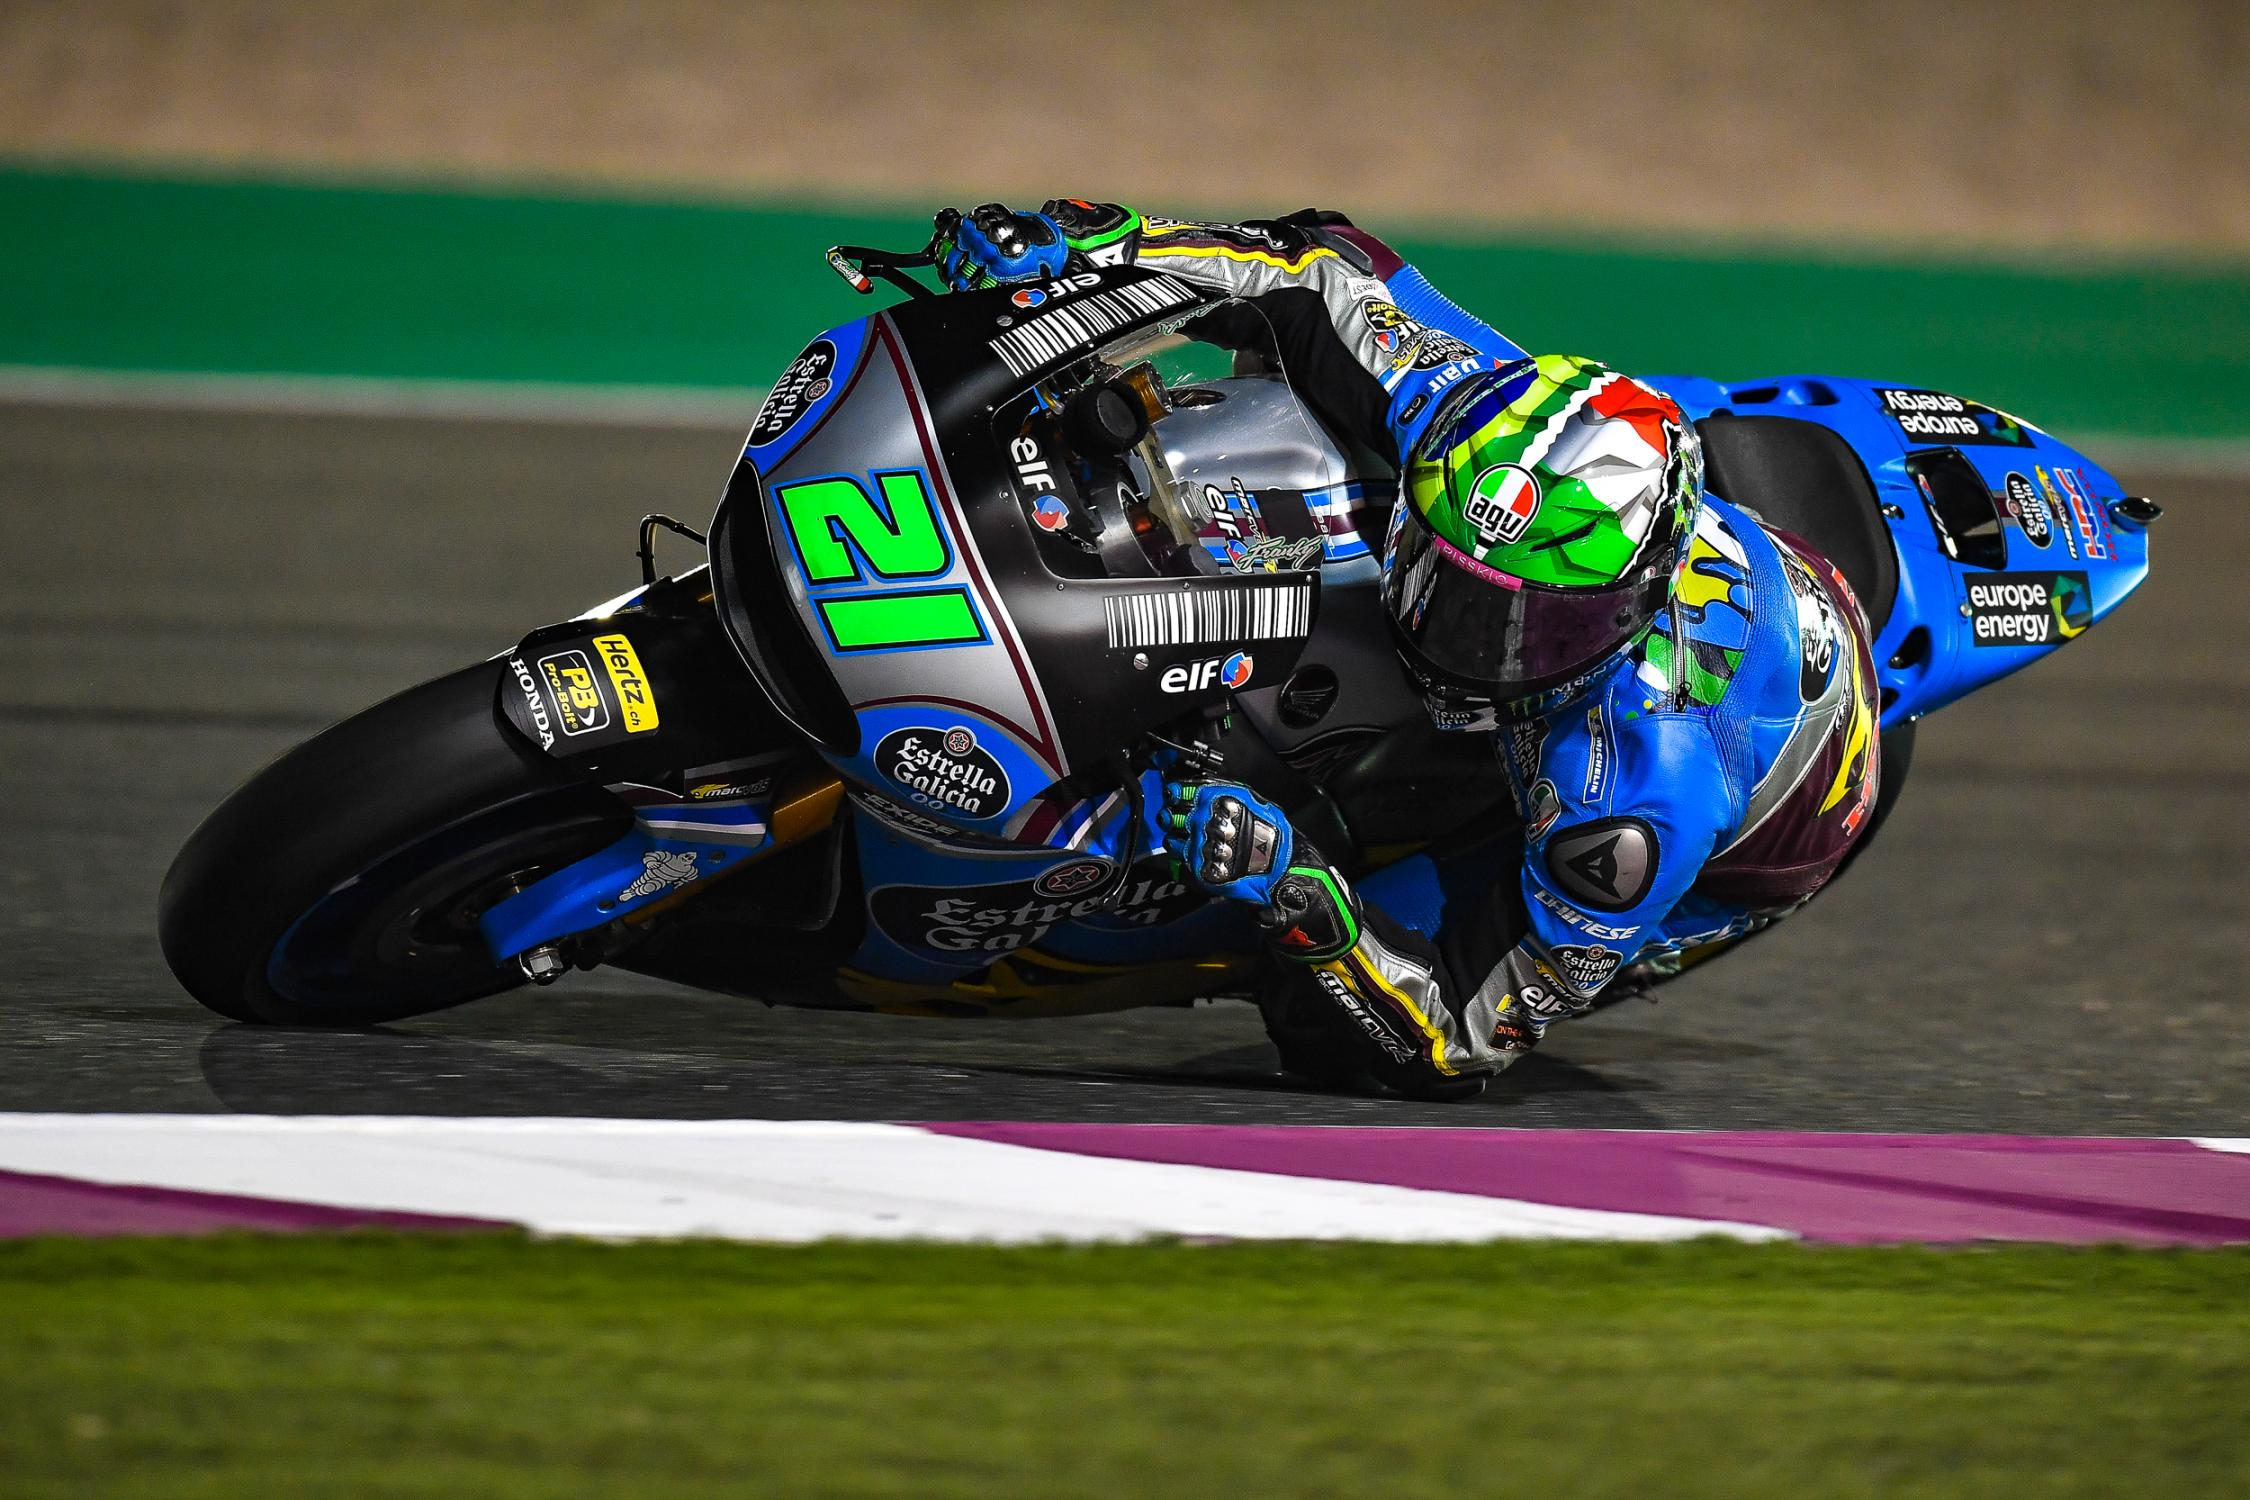 [Test] Losail 2018 21-franco-morbidelli-italg5_3283.gallery_full_top_fullscreen